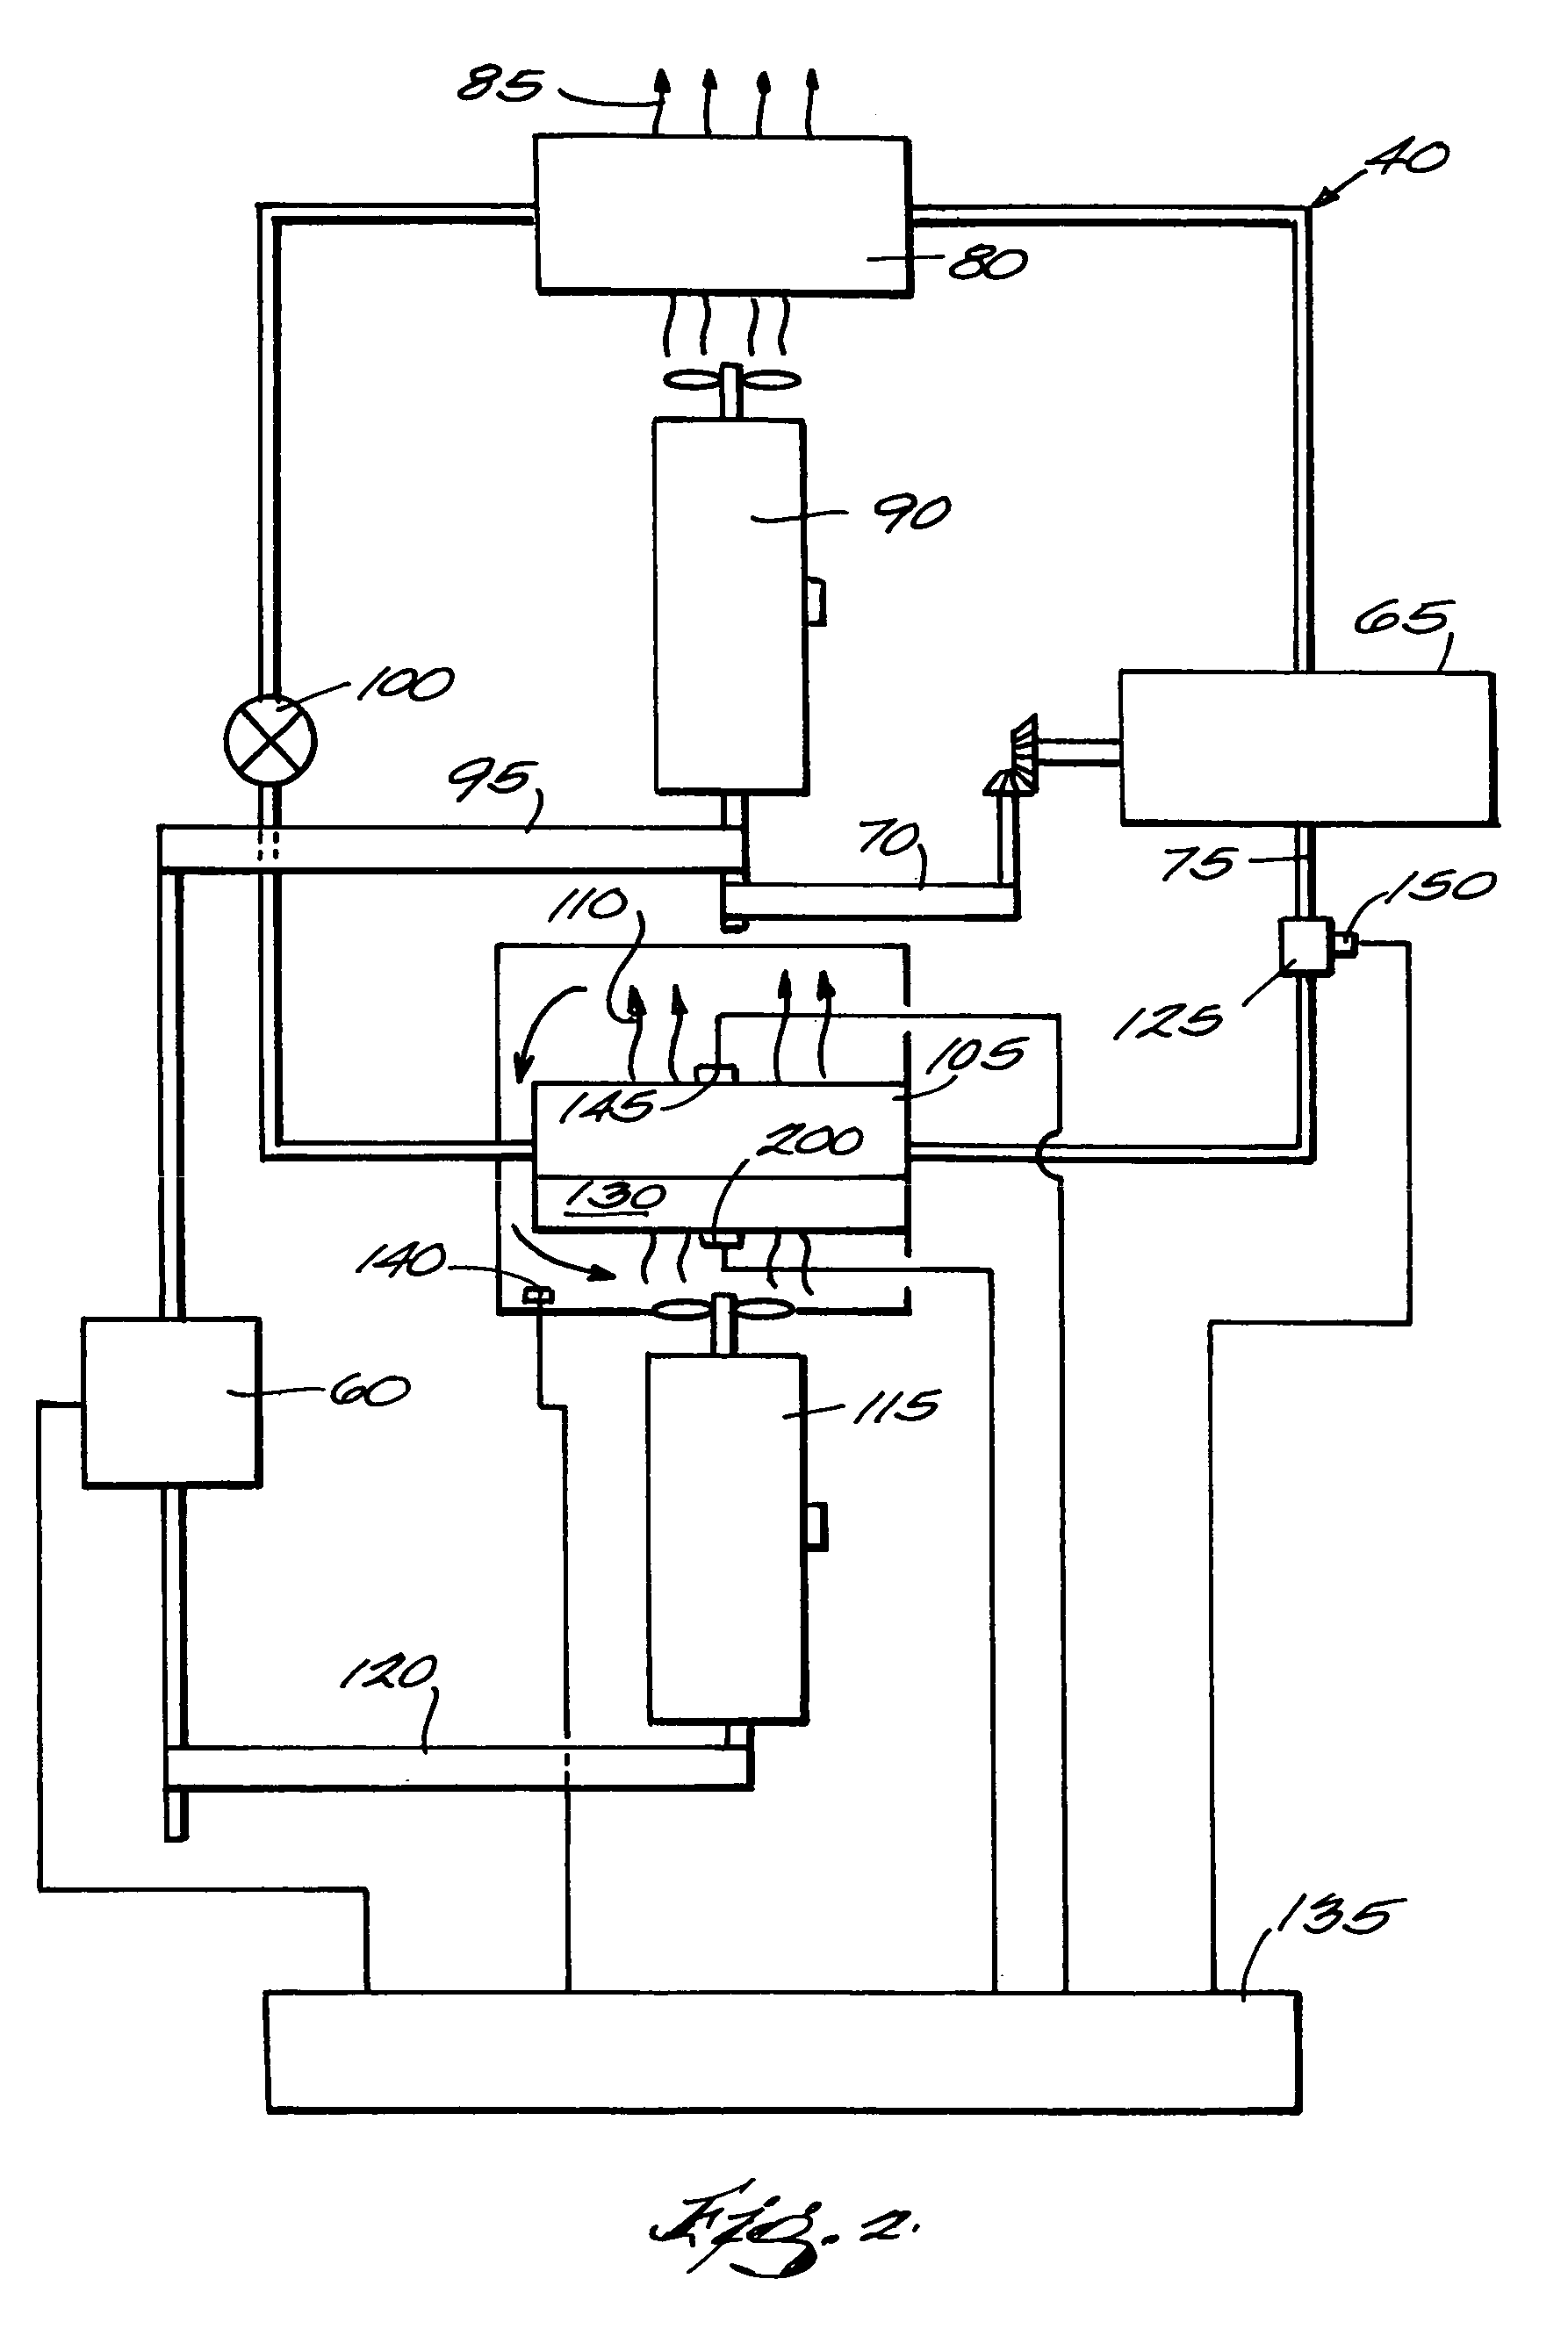 Thermo King V300 Wiring Diagram